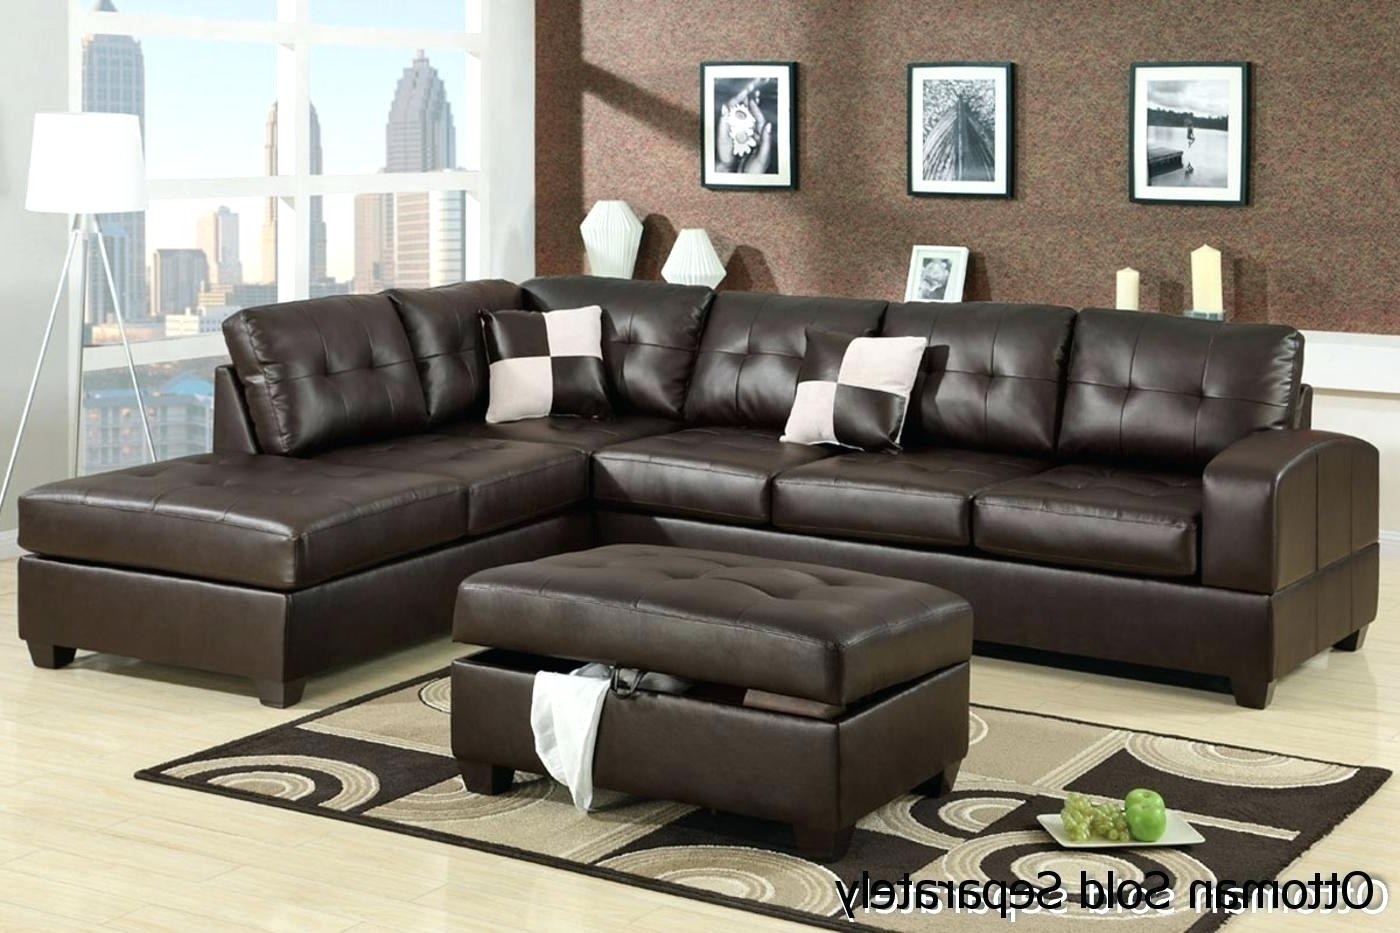 Most Recent Discount Sofa Sectionals Inexpensive Cheap Sectional Sofas Under Intended For Sectional Sofas Under  (View 5 of 20)